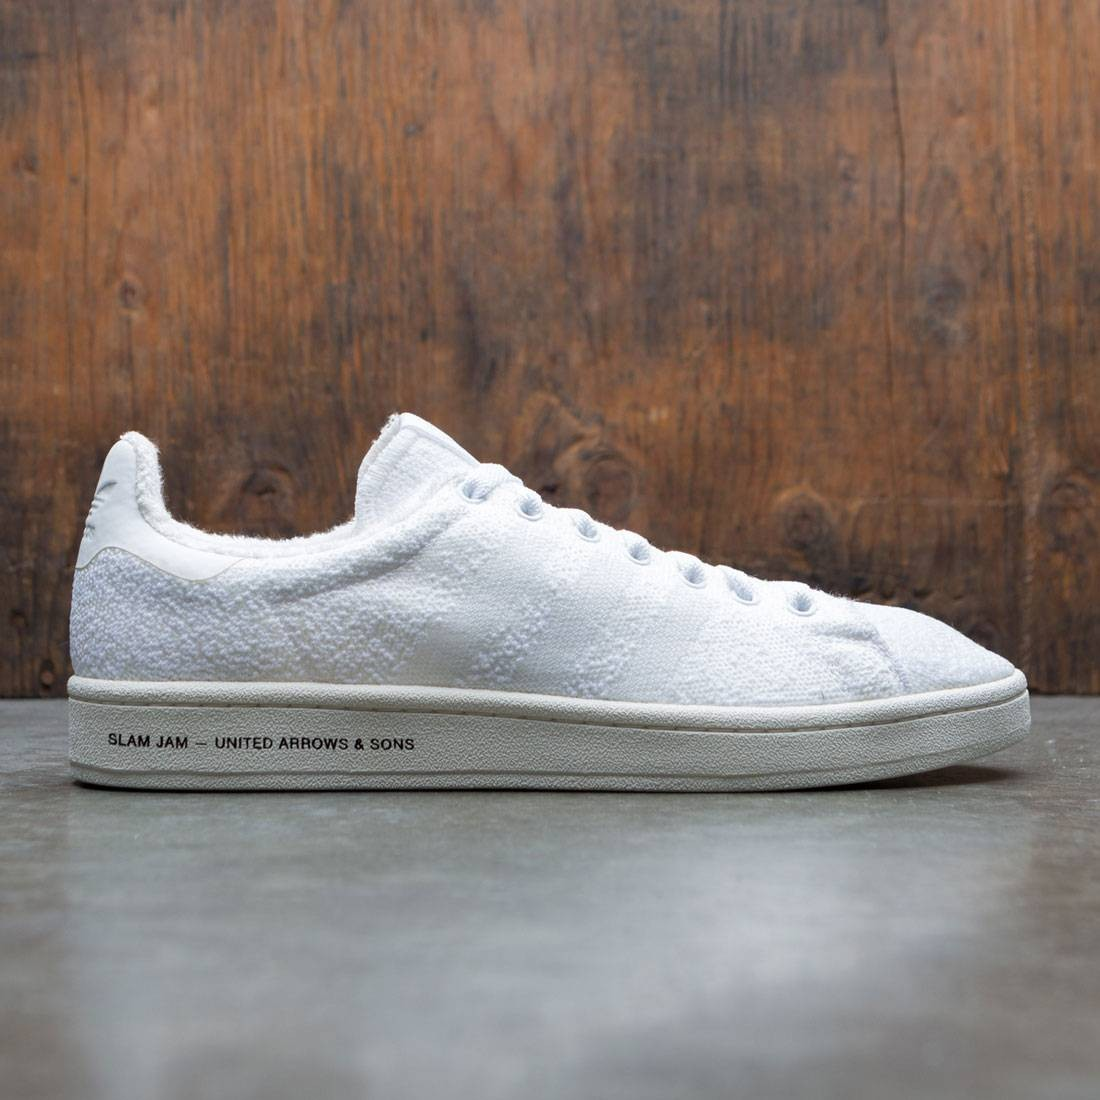 750b69edb5fd5 Adidas Consortium x United Arrows And Sons x Slam Jam Men Campus Sneaker  Exchange white footwear white chalk white